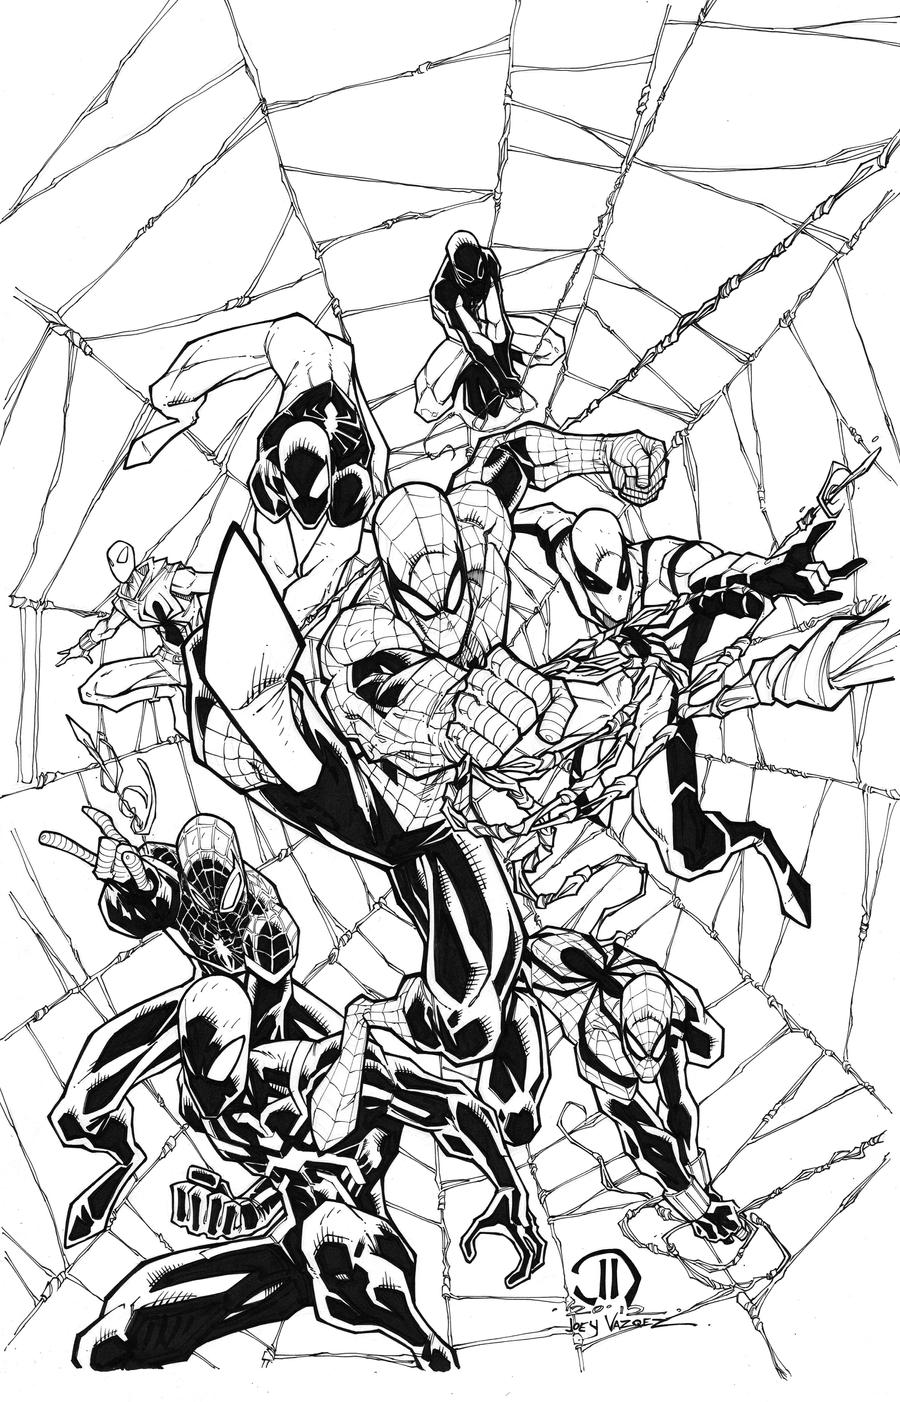 Spiderman MONTAGE Commission inks by JoeyVazquez